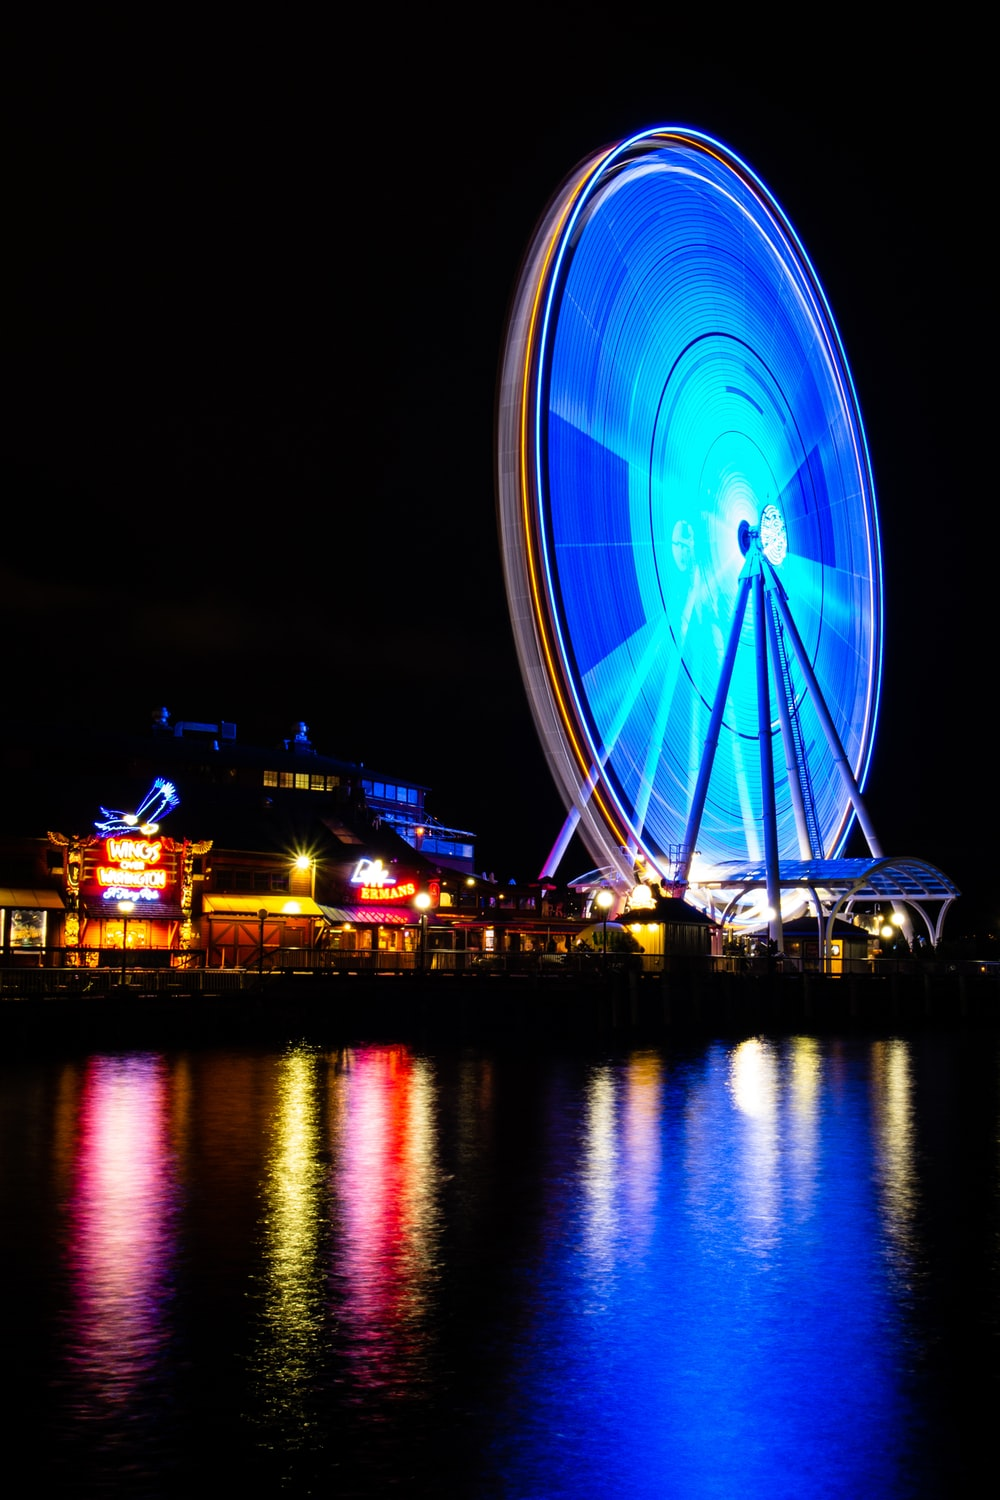 Ferris wheel during nighttime